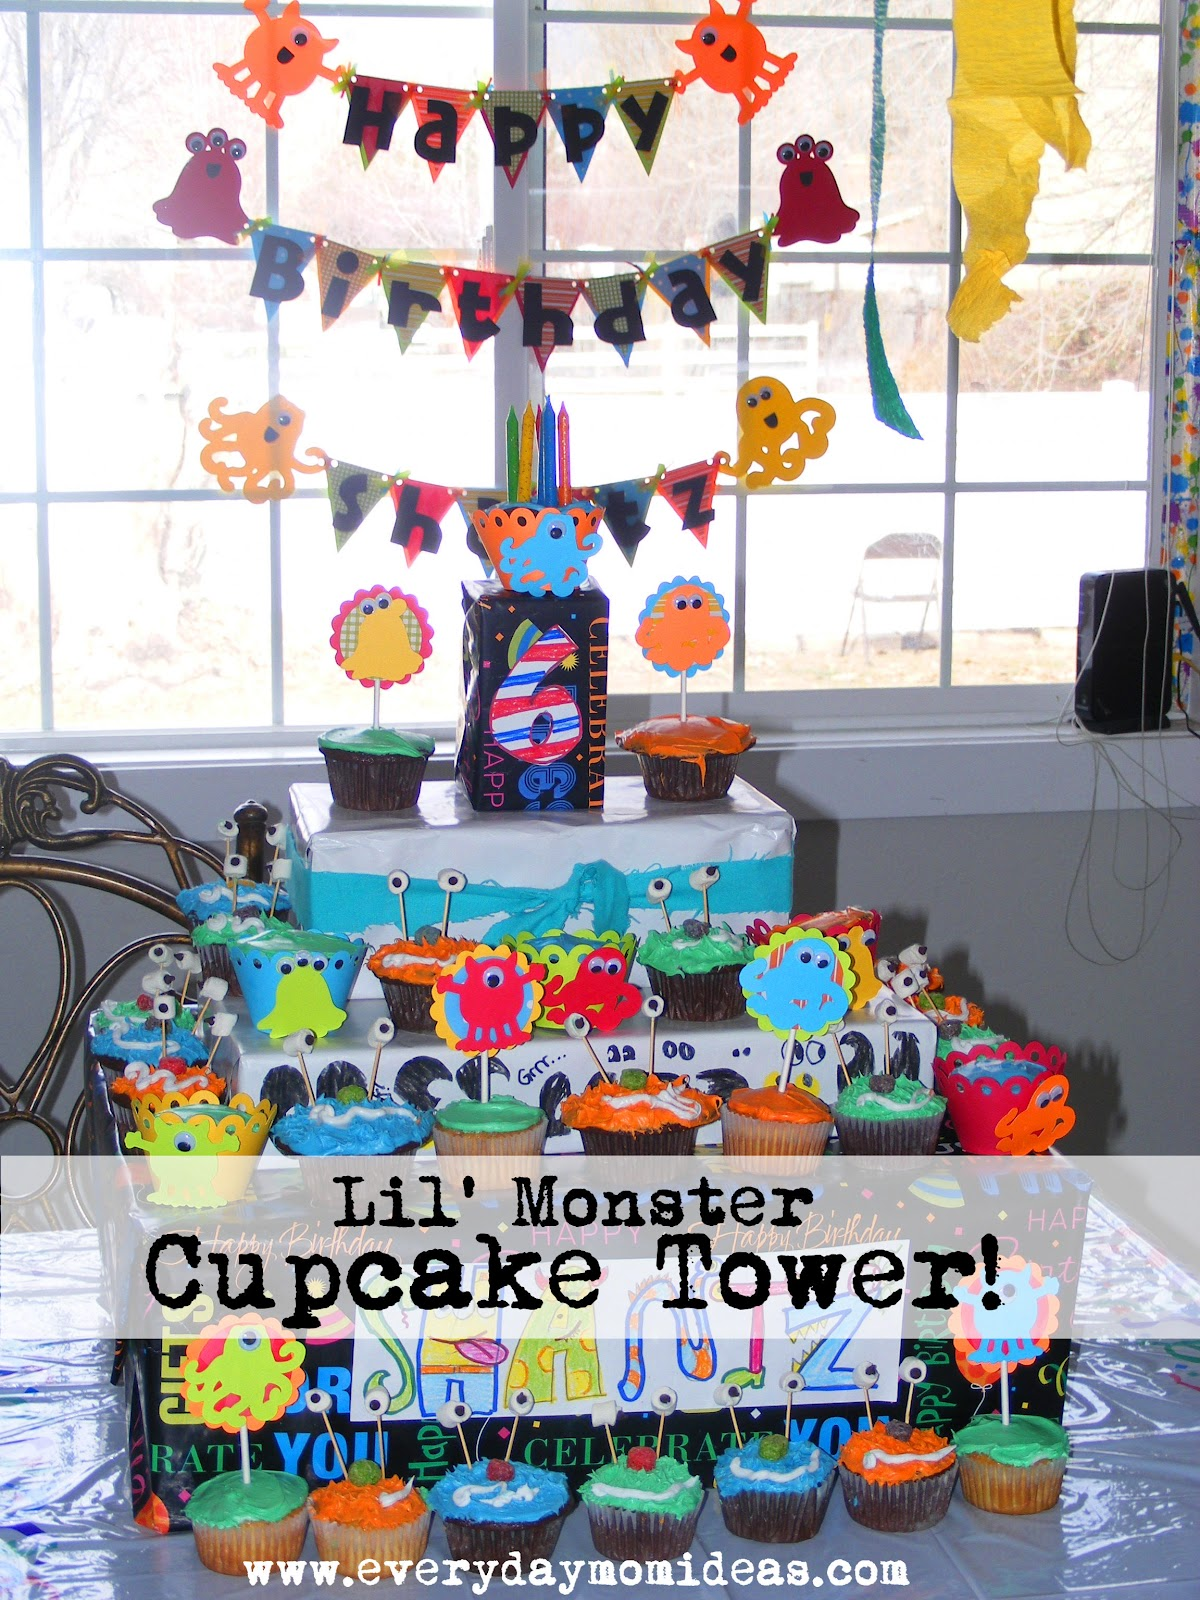 little monster bash -birthday party ideas - everyday mom ideas